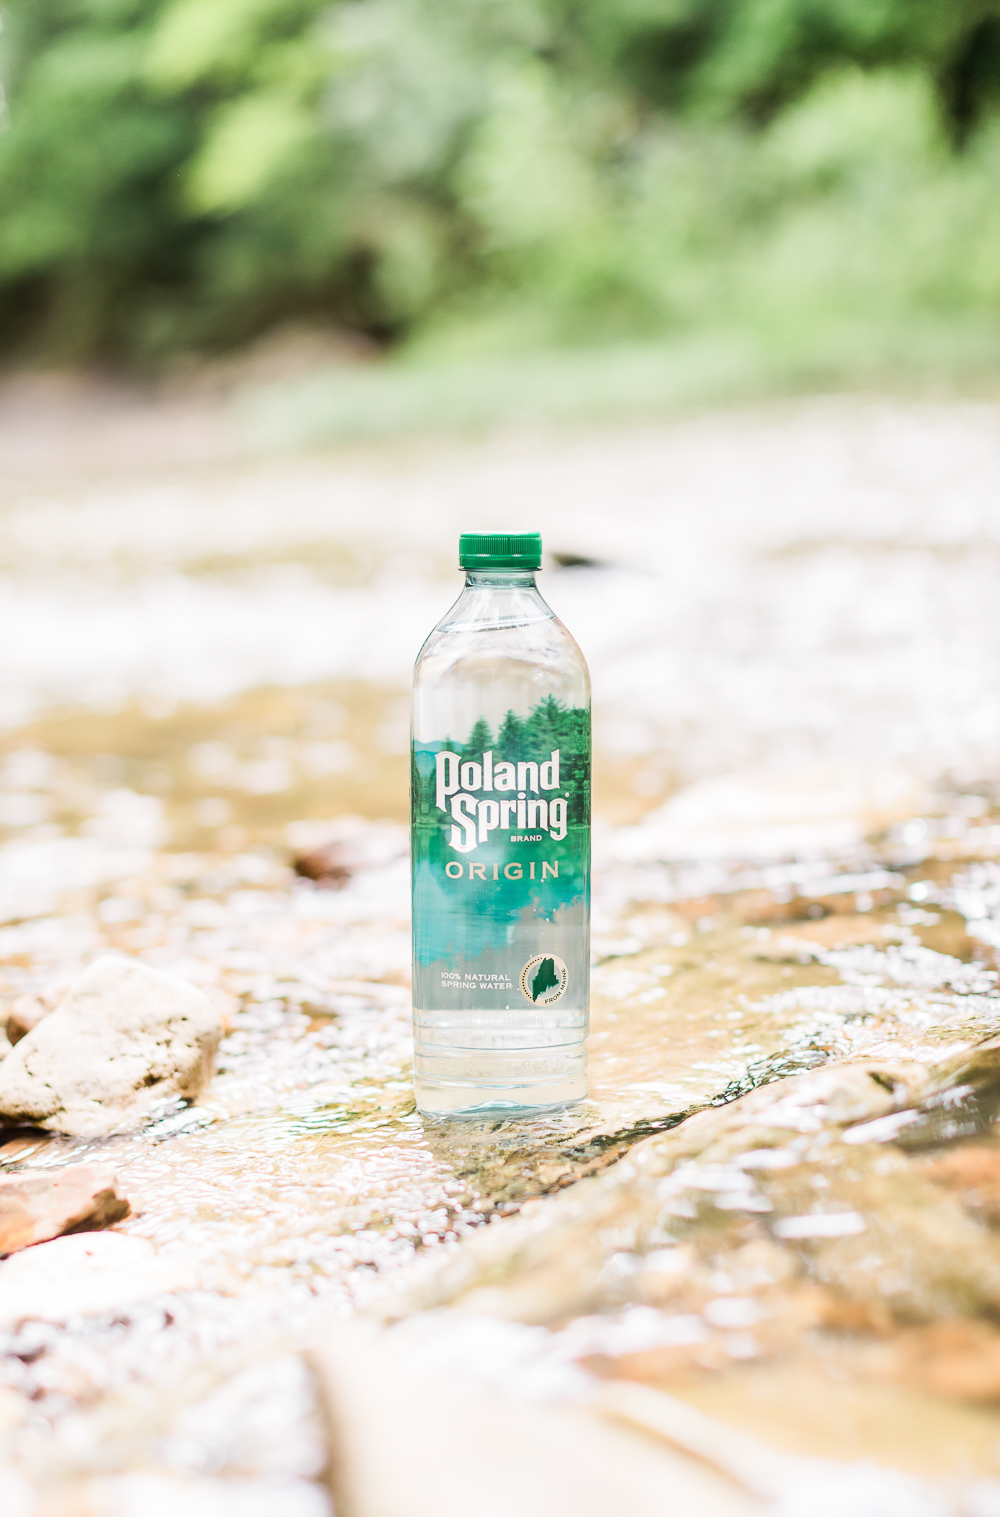 Poland Spring Origin Natural Spring Water at Walmart, Summer Adventuring: How to Plan the Perfect Hiking Picnic by popular midwest blogger Stephanie Ziajka from Diary of a Debutante, Columbia MO hiking